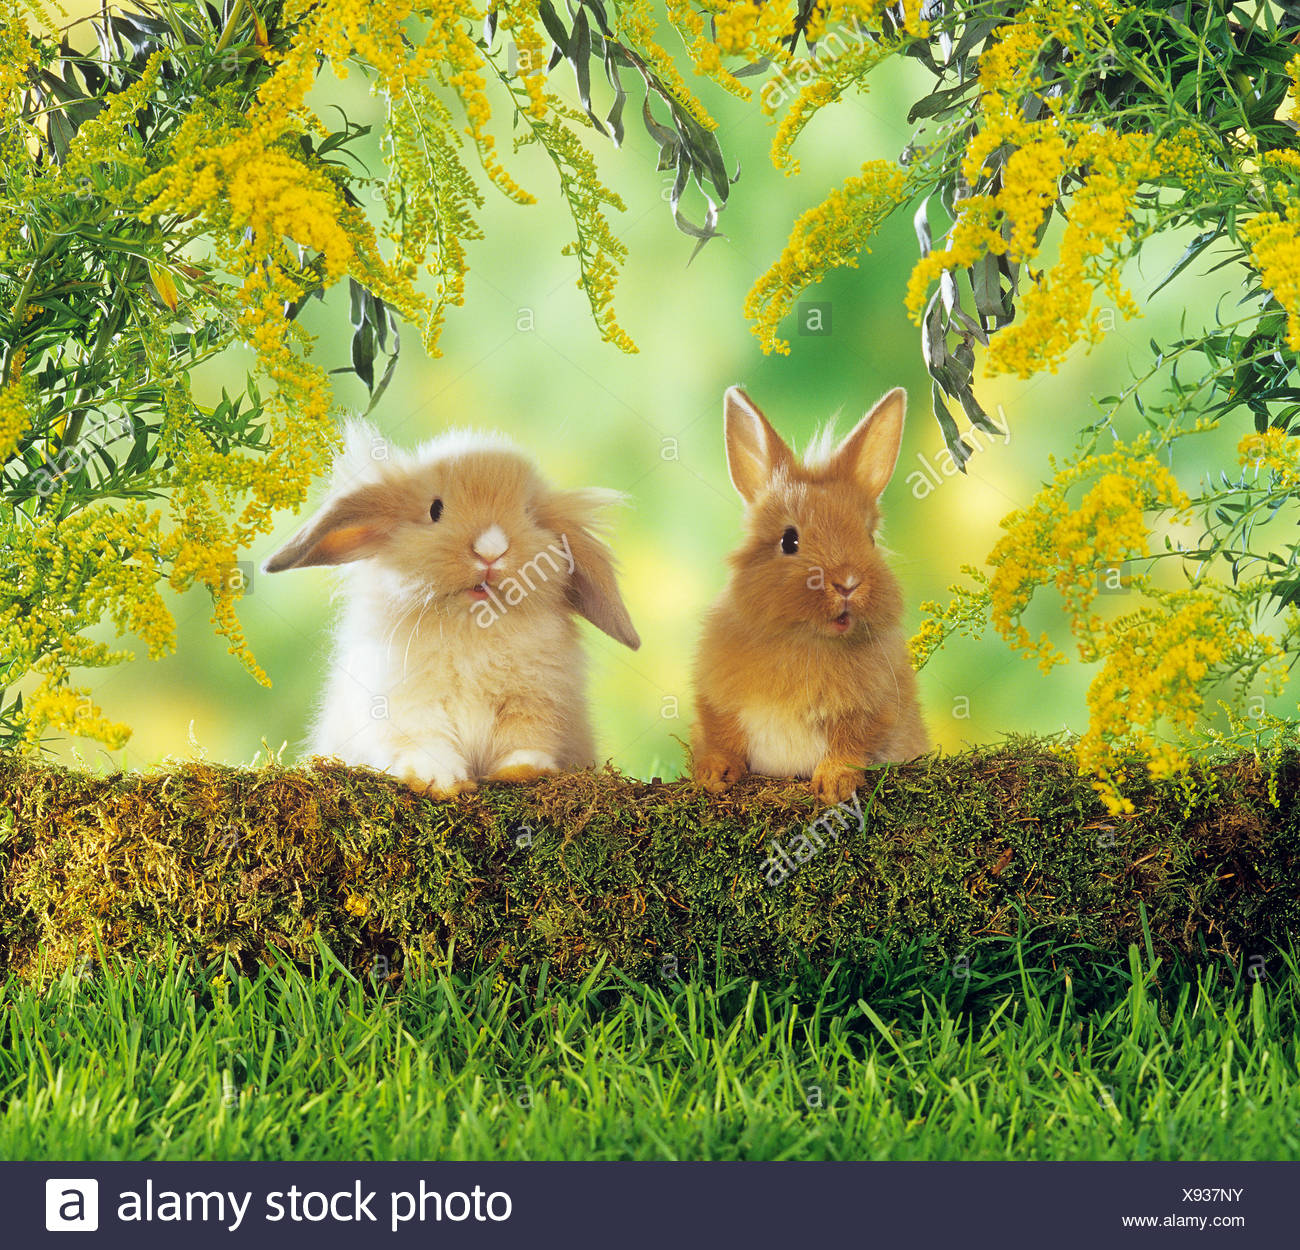 two li0on-headed dwarf rabbits behind tree trunk - Stock Image